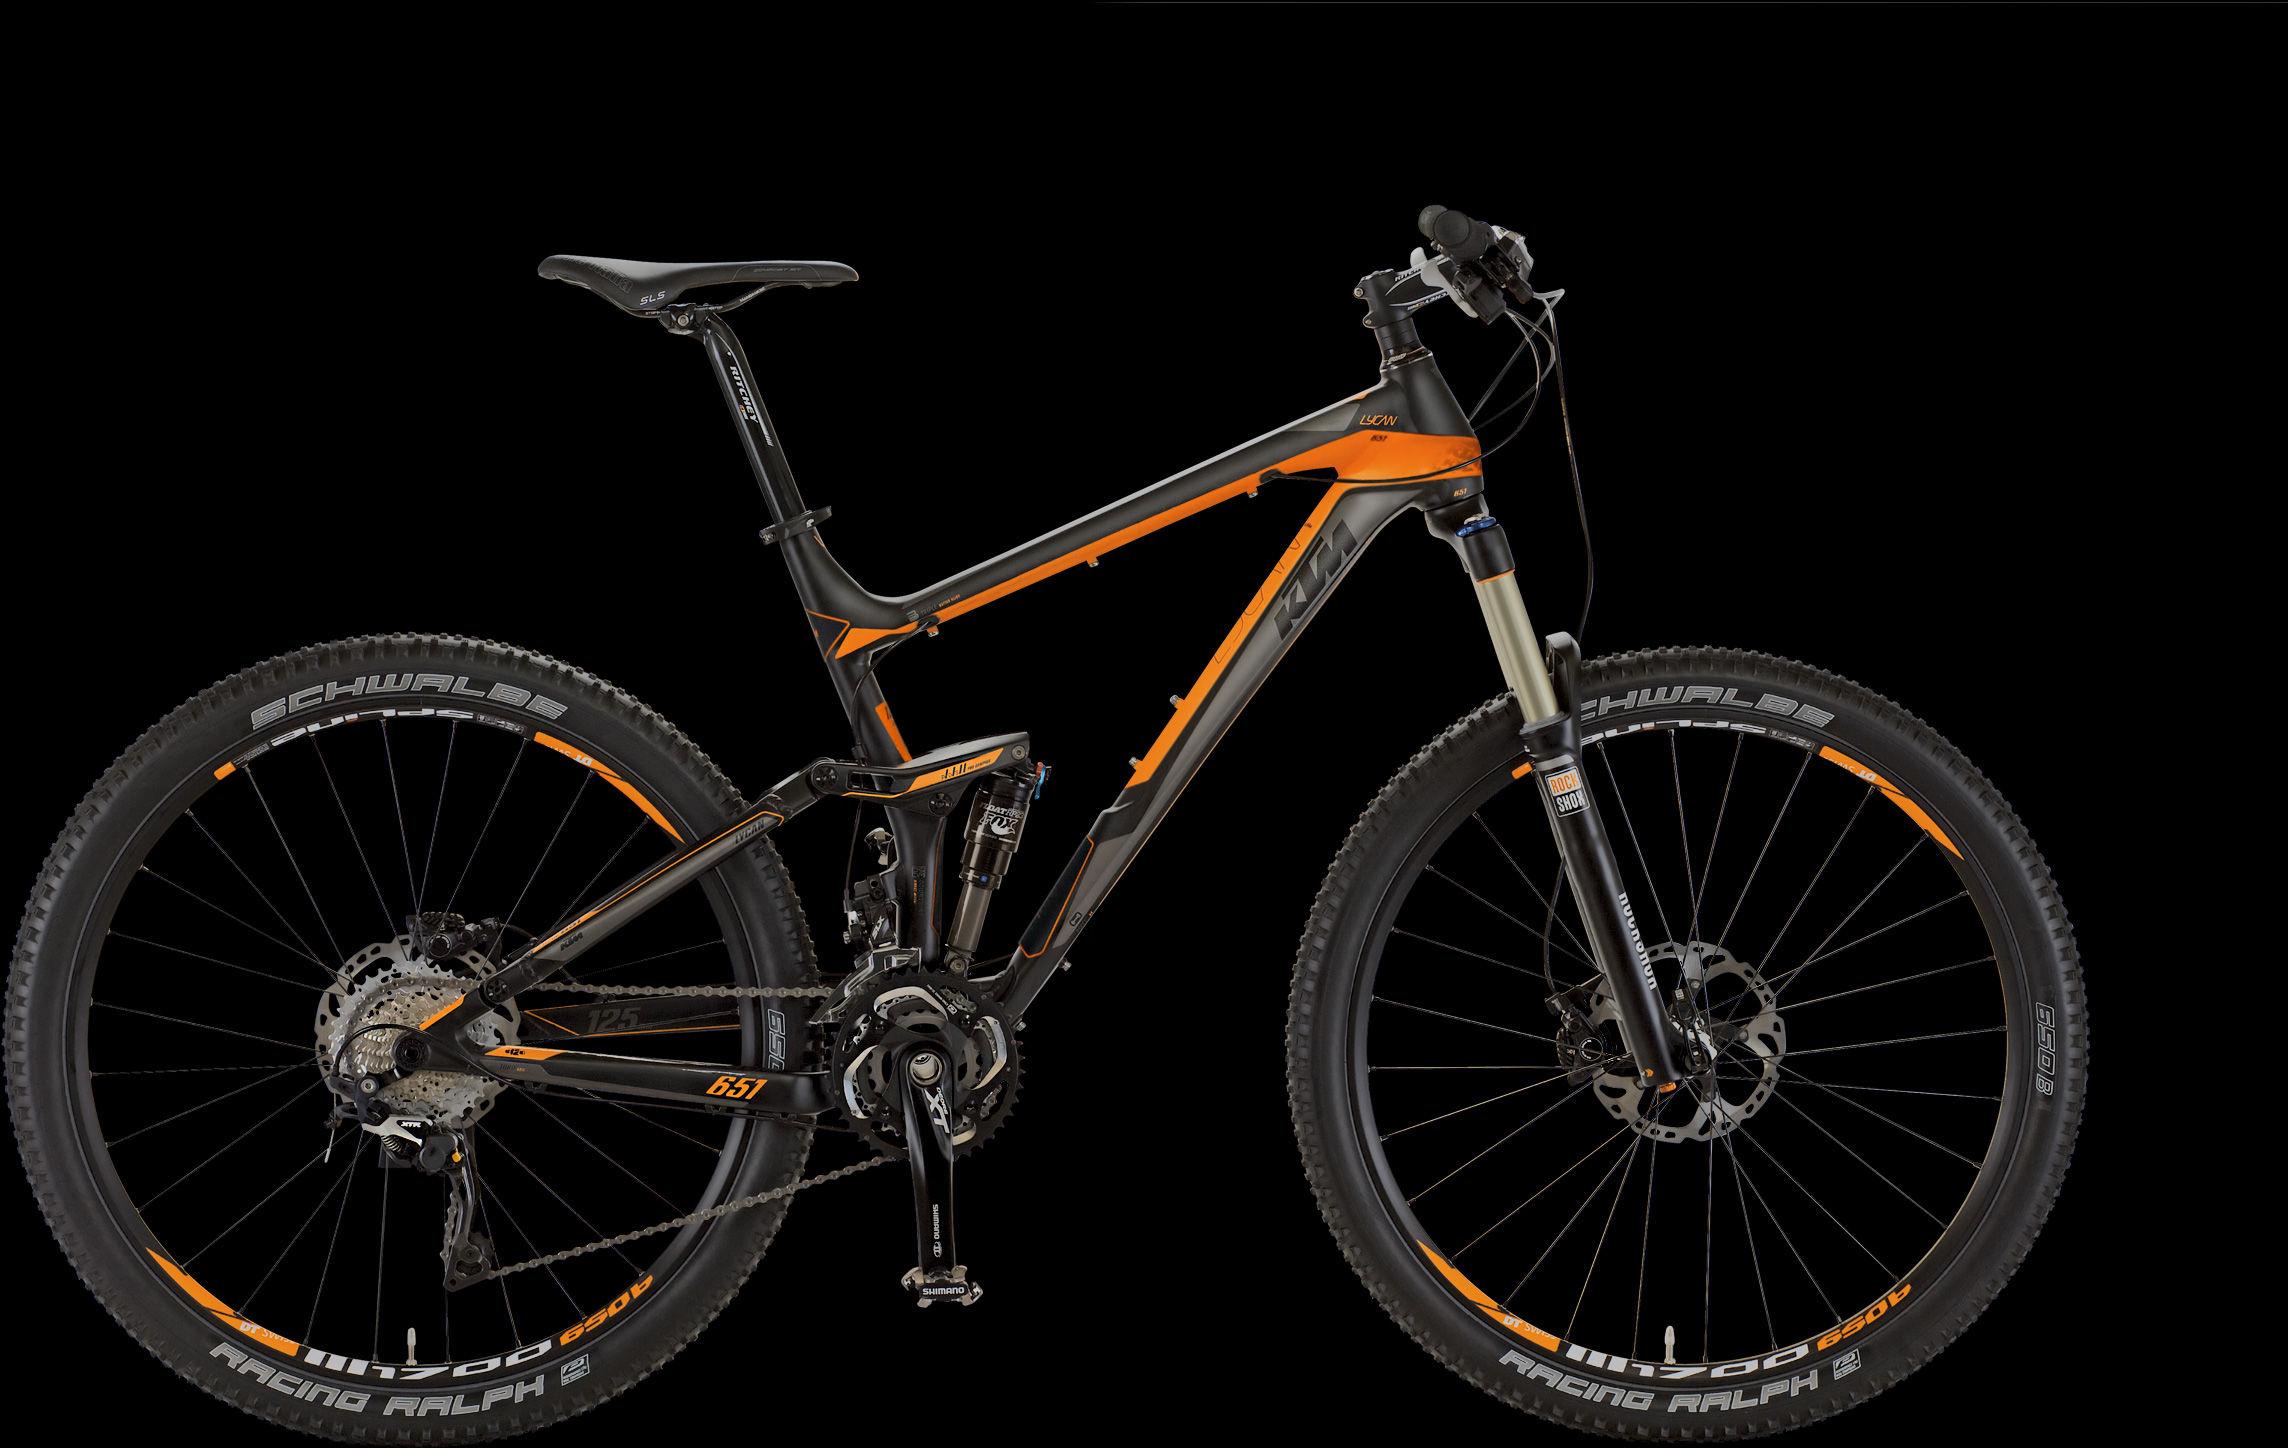 Ktm Lycan 651 2013 Review The Bike List